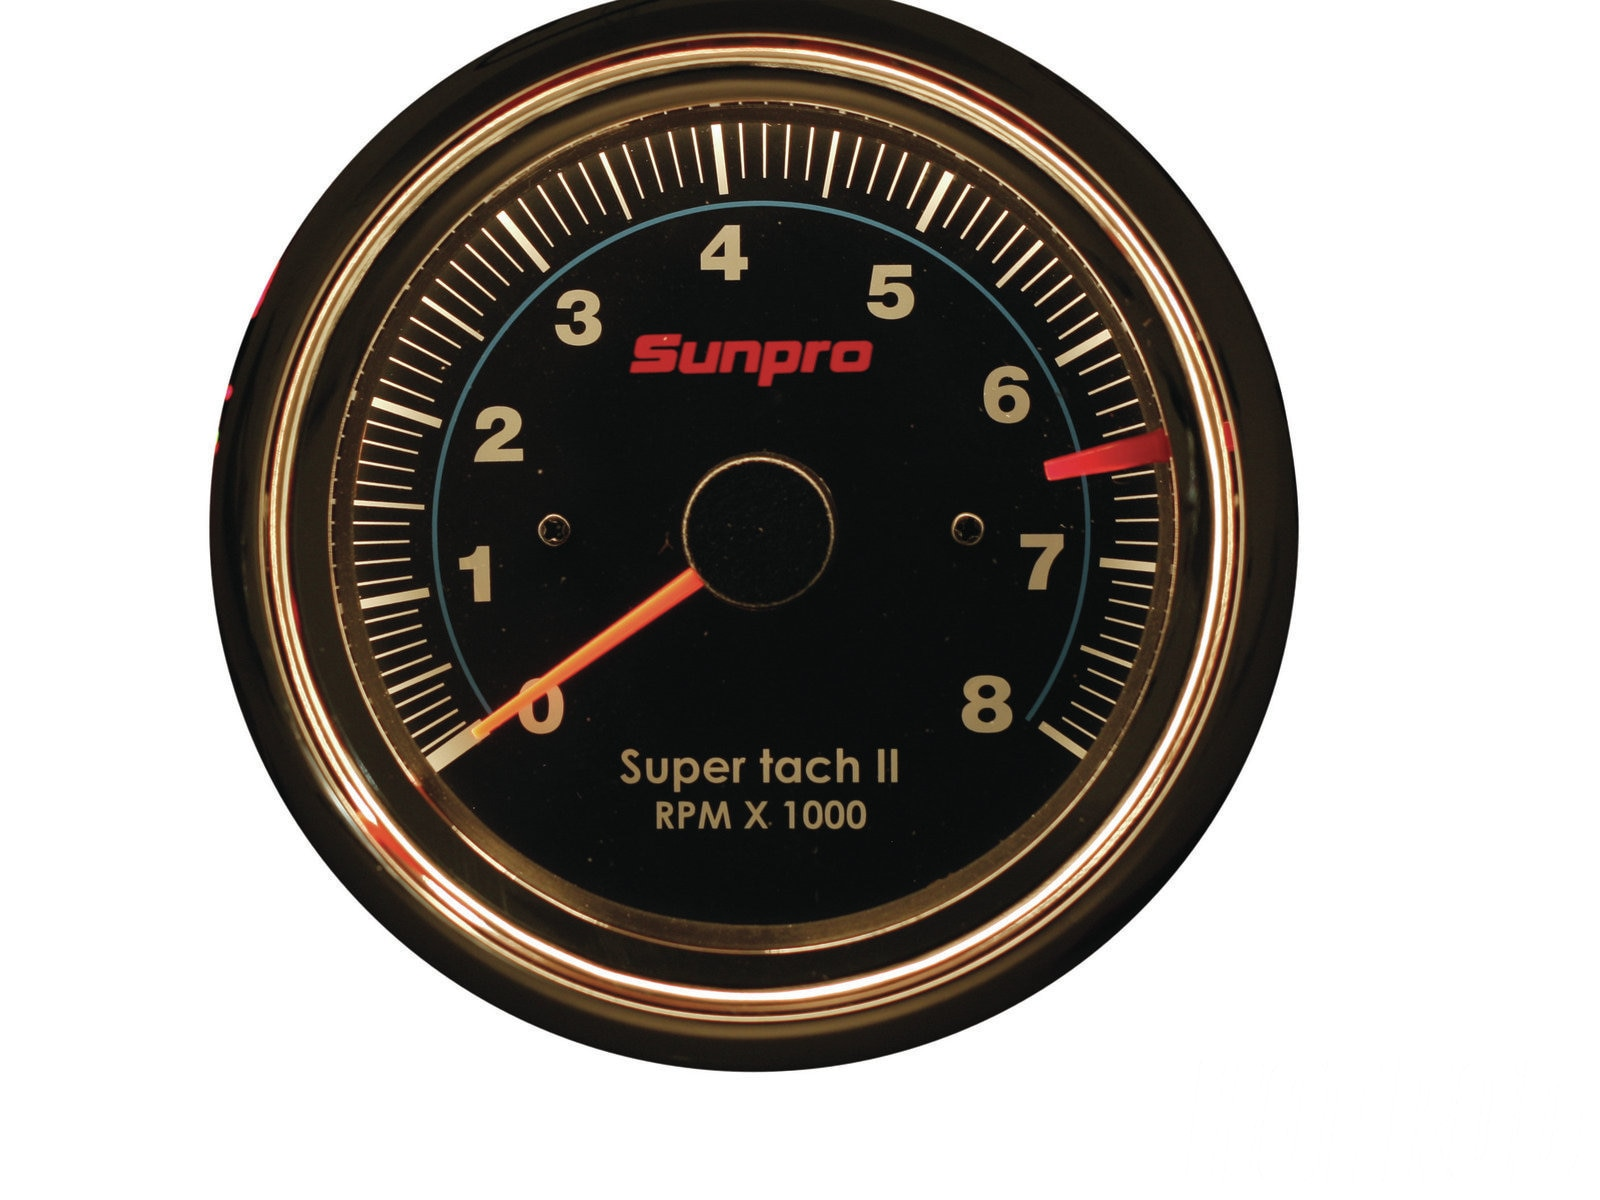 Pro Tach Wiring Another Blog About Diagram Equus Tachometer 29 Images Autometer Comp